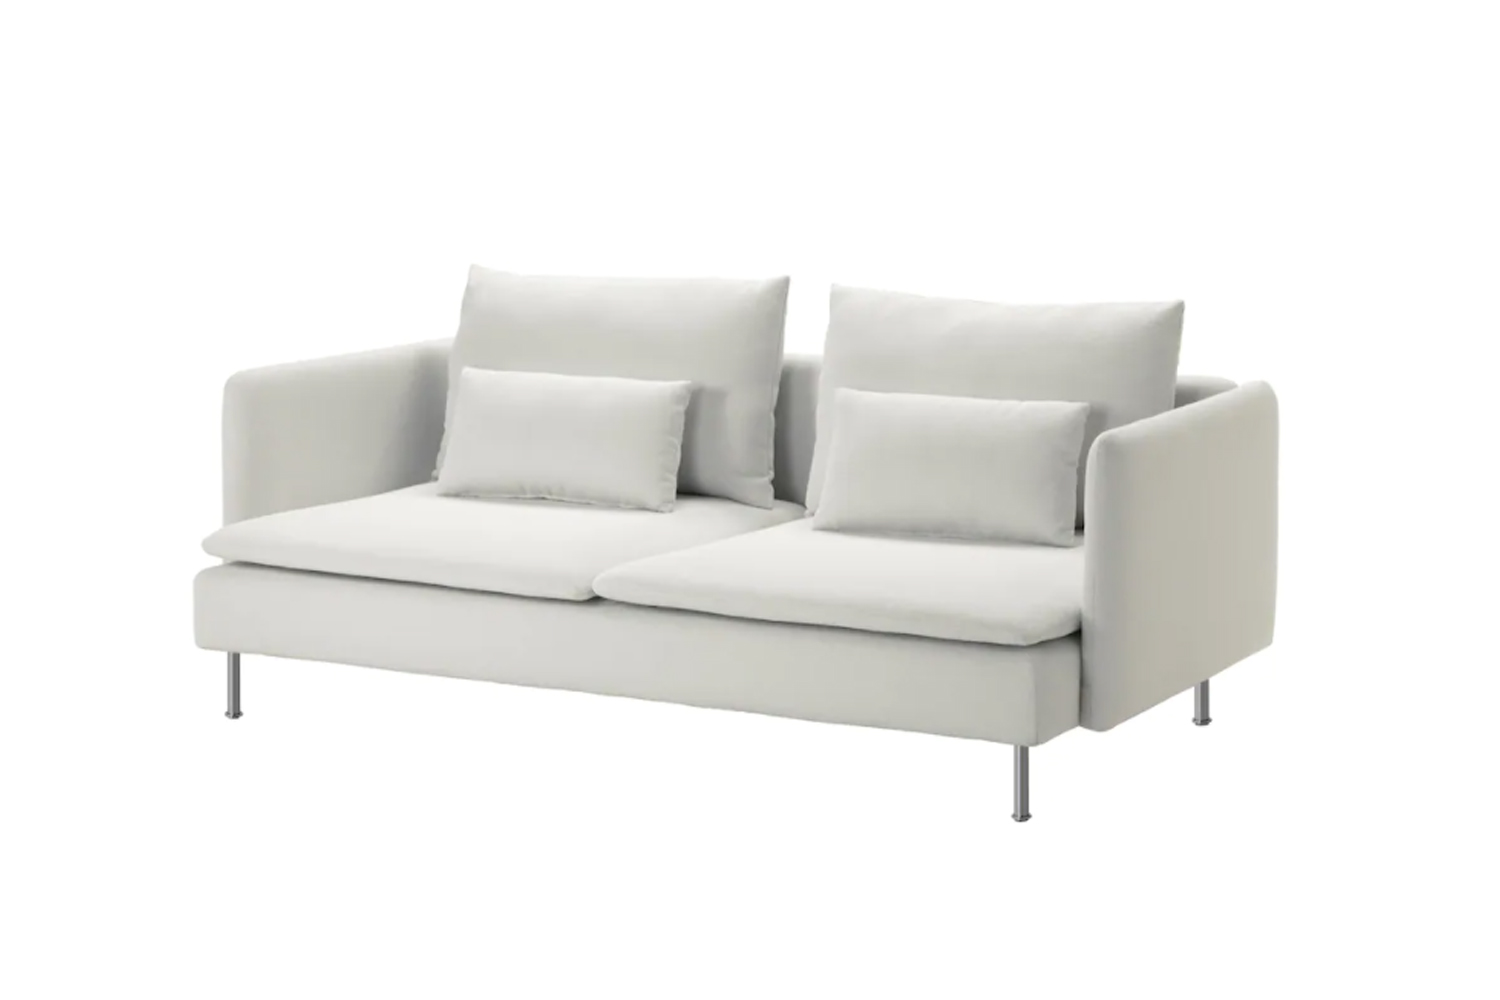 the ikea soderhamn finnsta white sofa is \$699 and is paired with a bemz soderh 16